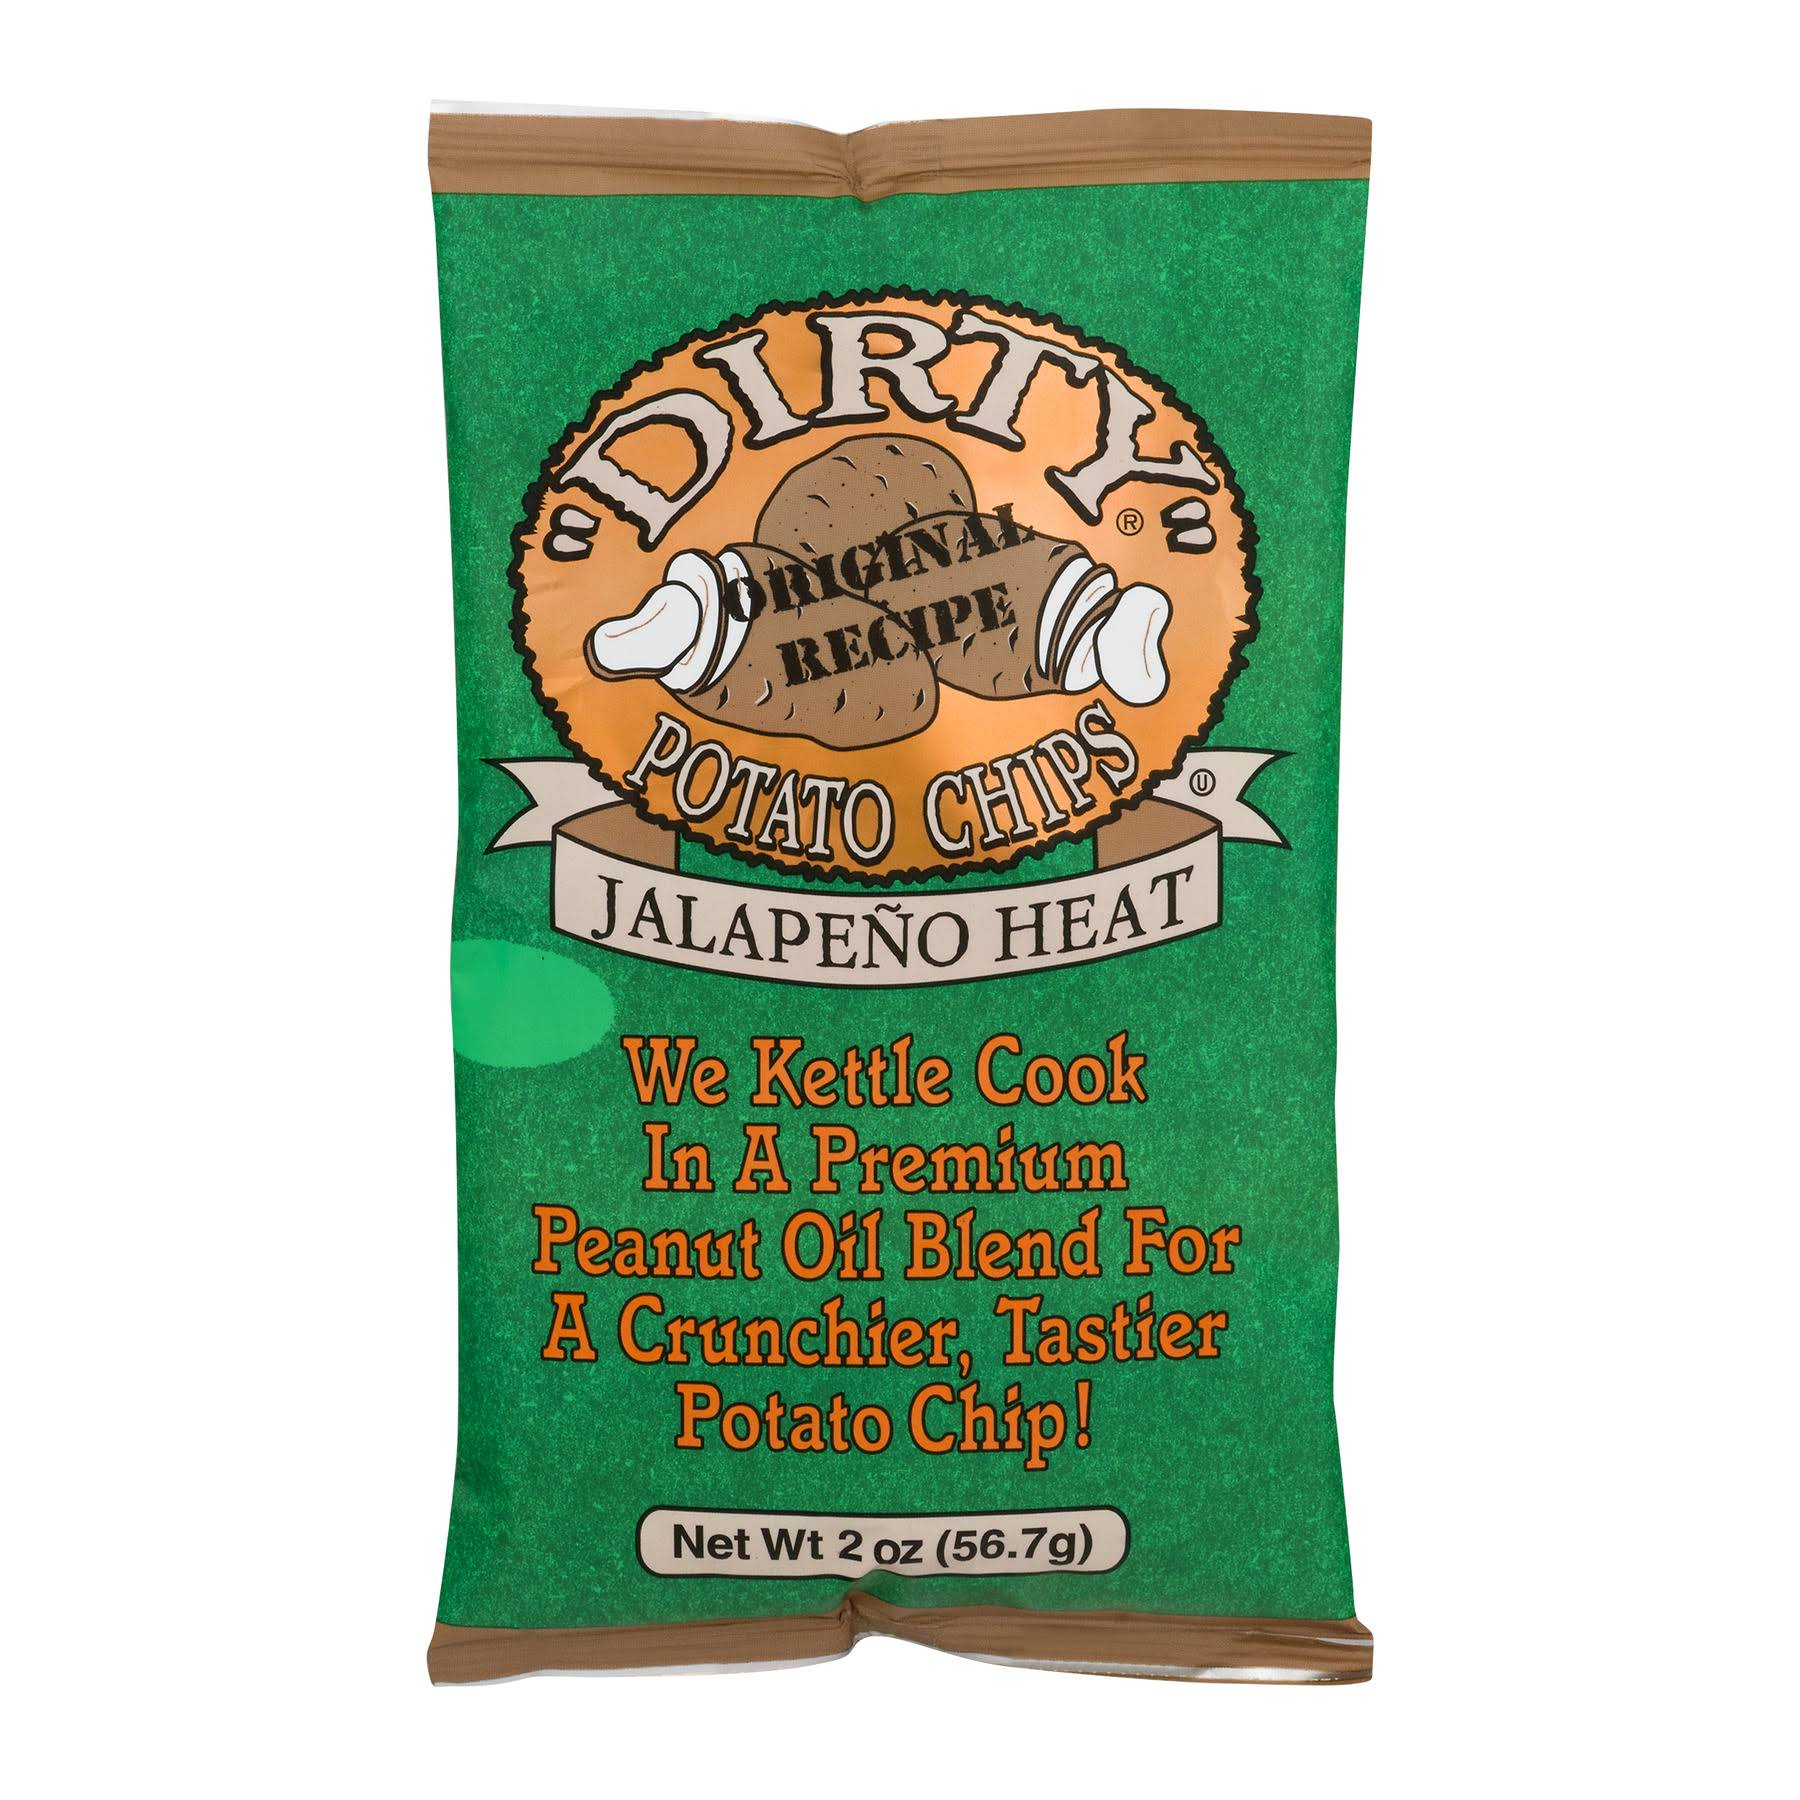 Dirty Potato Chips, Jalapeno Heat - 2 oz bag